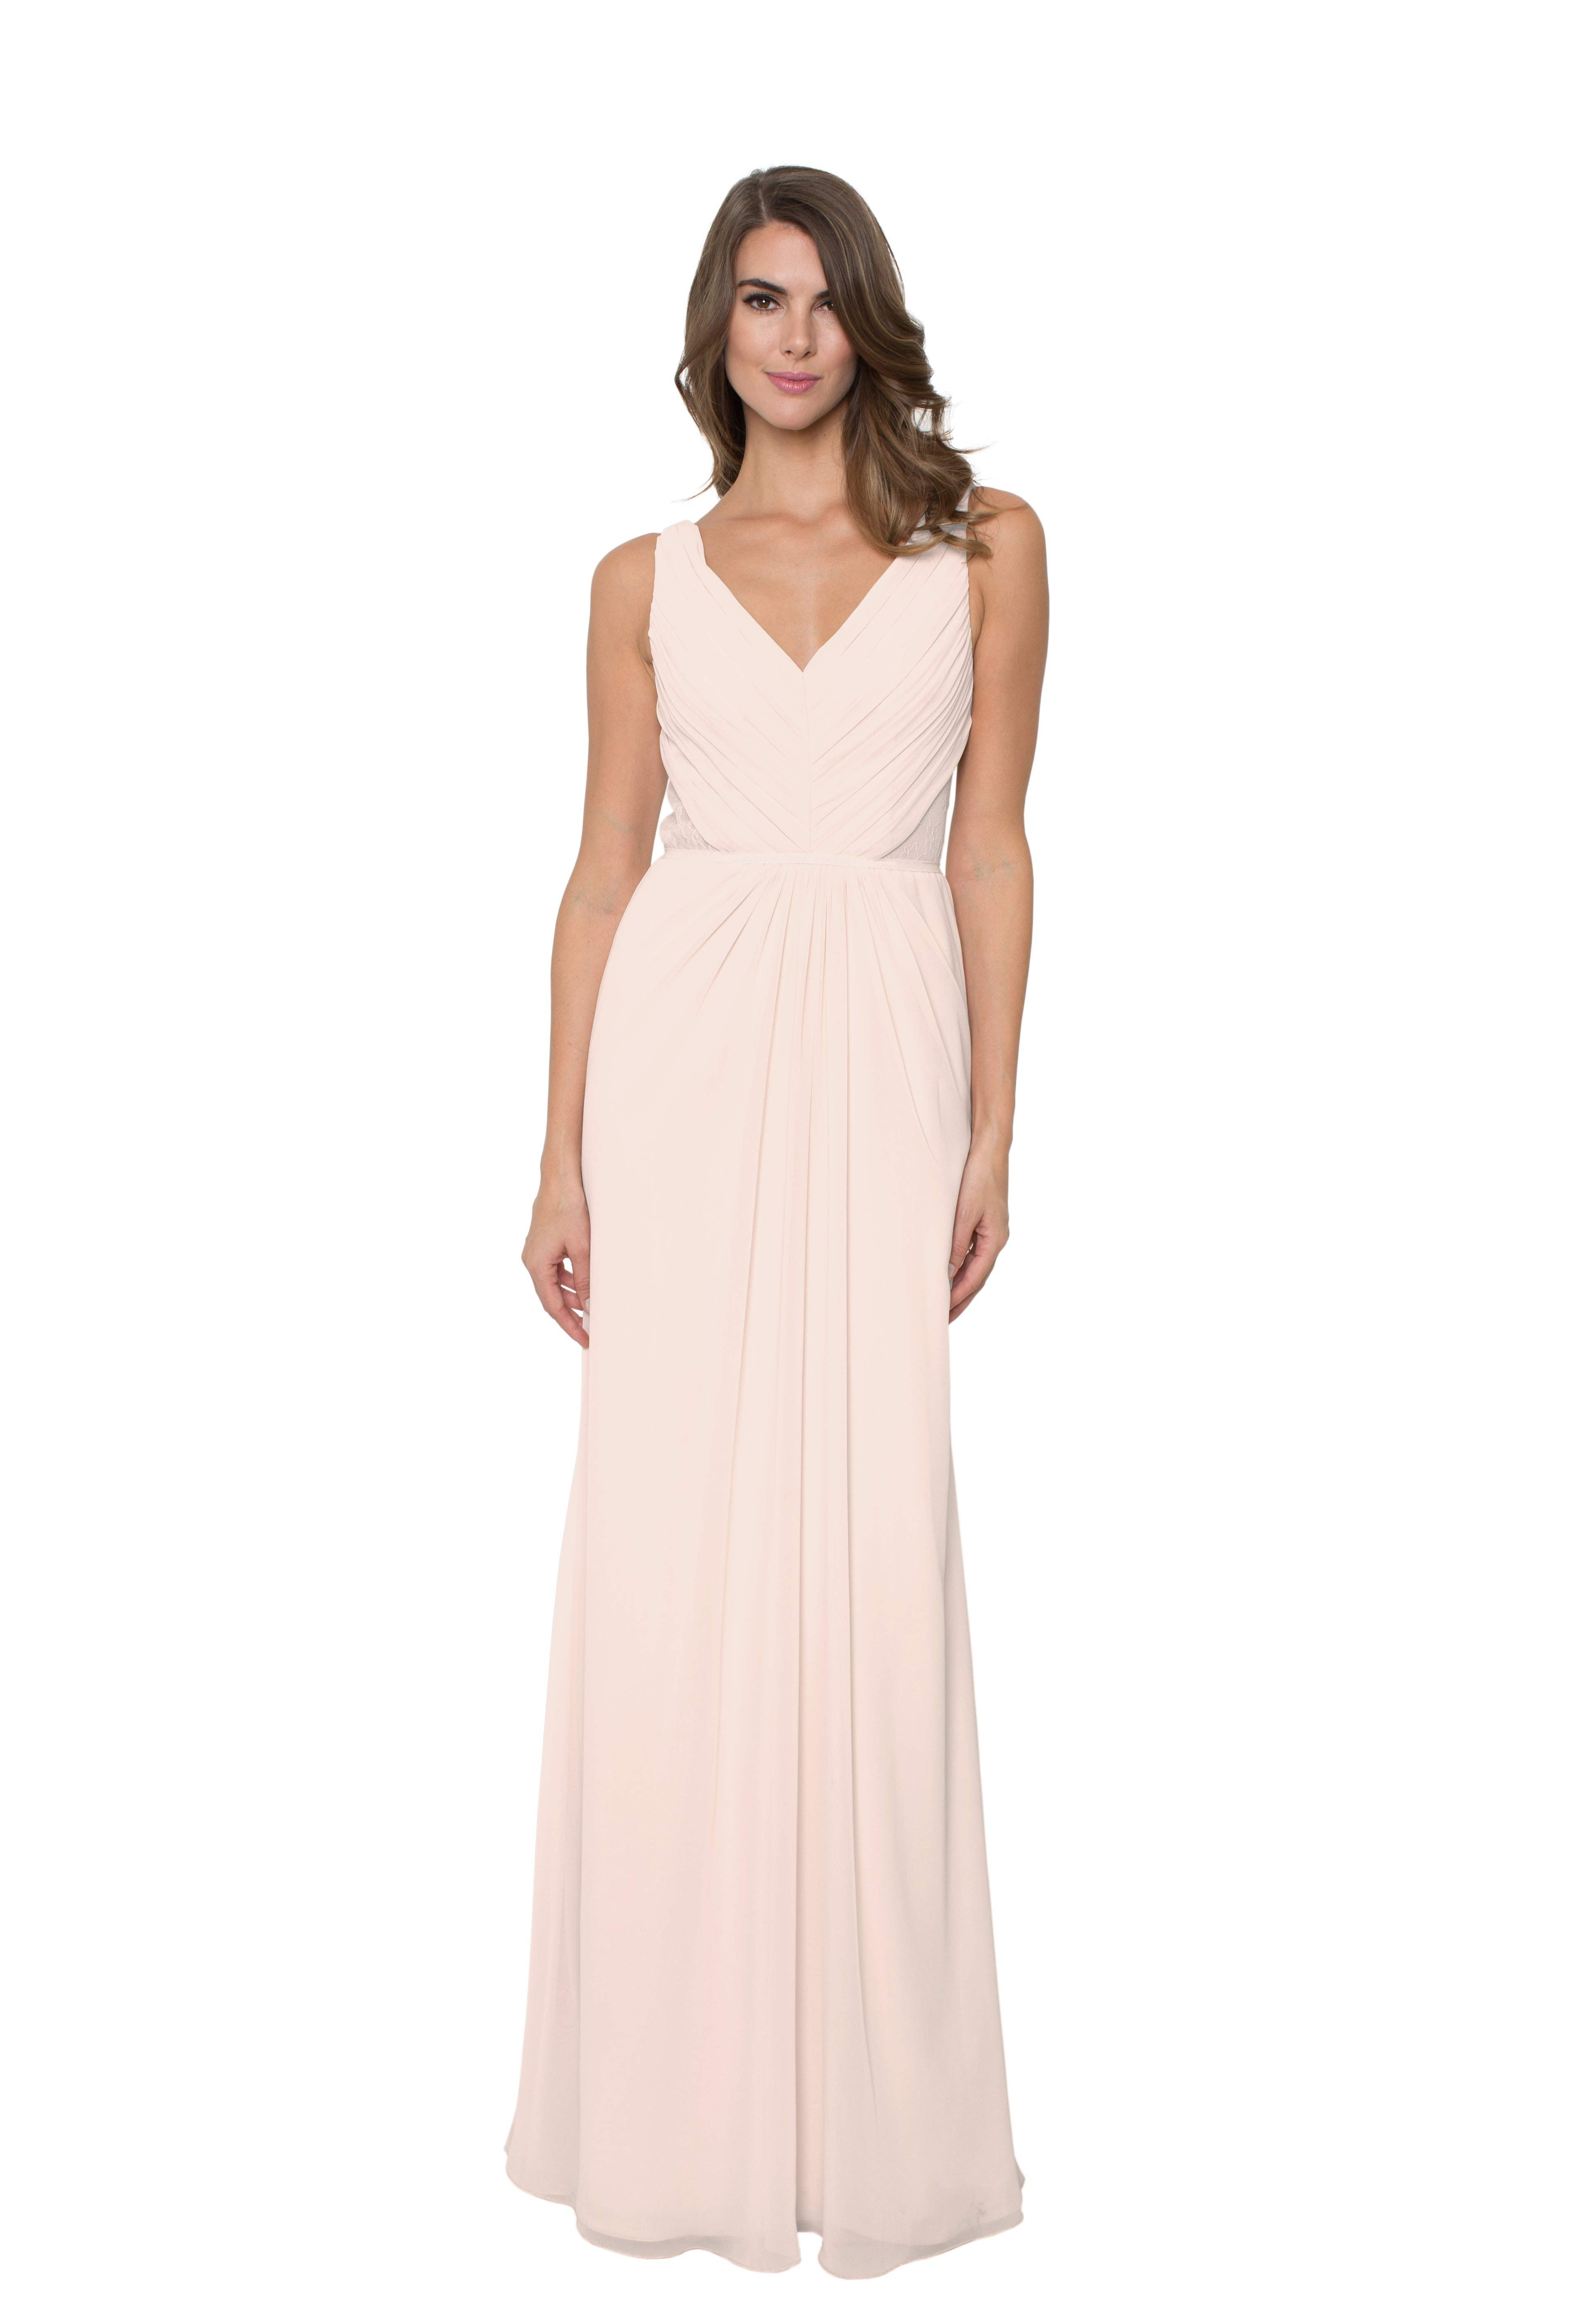 Monique lhuillier amelia monique lhuillier amelia and champagne monique lhuillier amelia bridesmaid dress with a cut out lace back available ombrellifo Choice Image